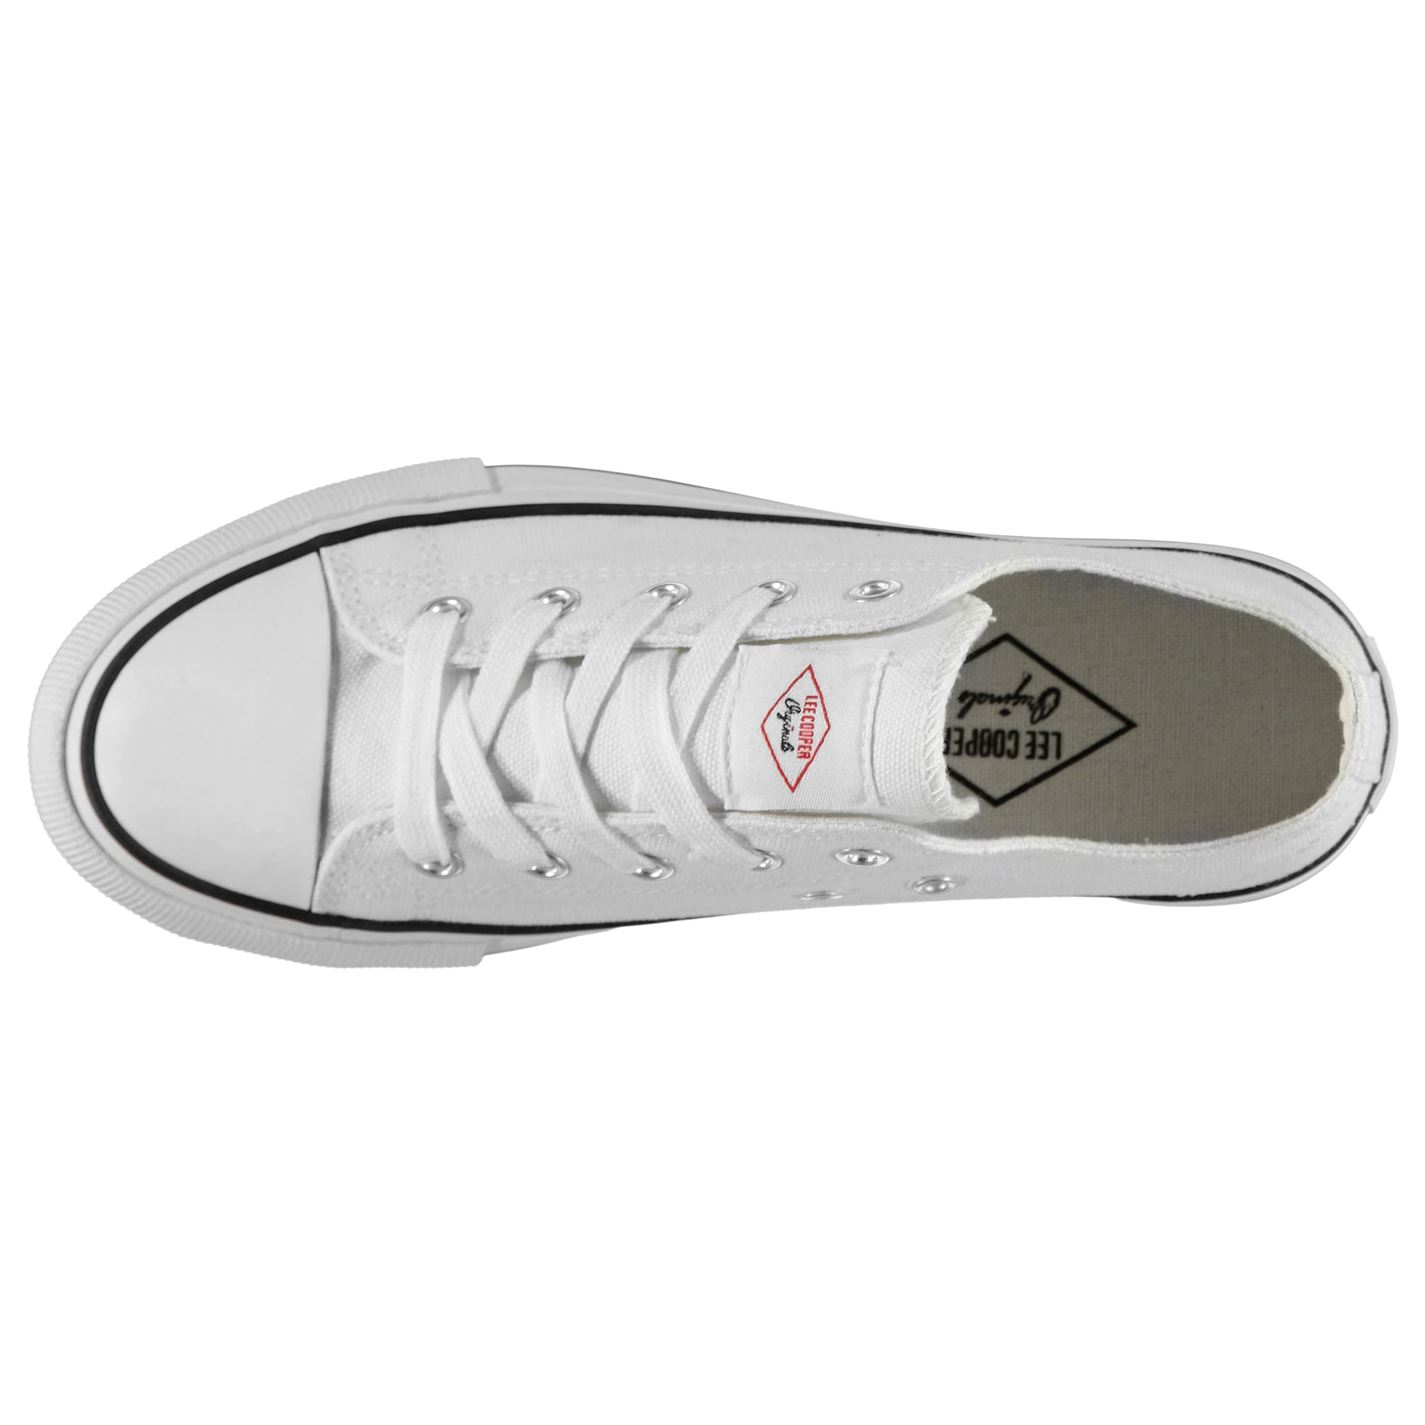 Lee Cooper Womens Canvas Lo Shoes Trainers Low Lace Up